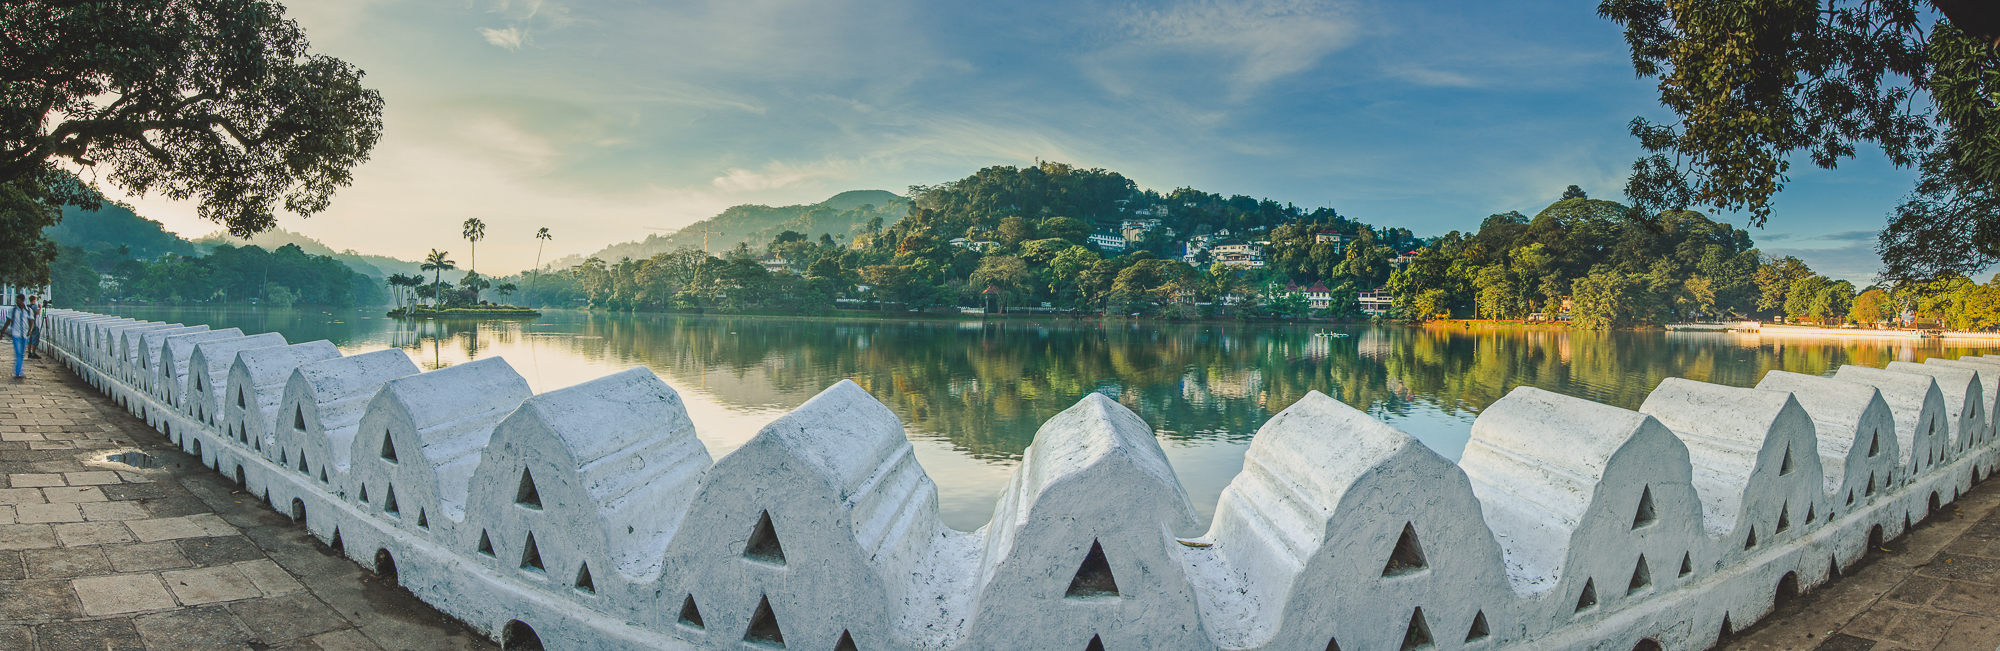 Wide shot of the lake in KAndy